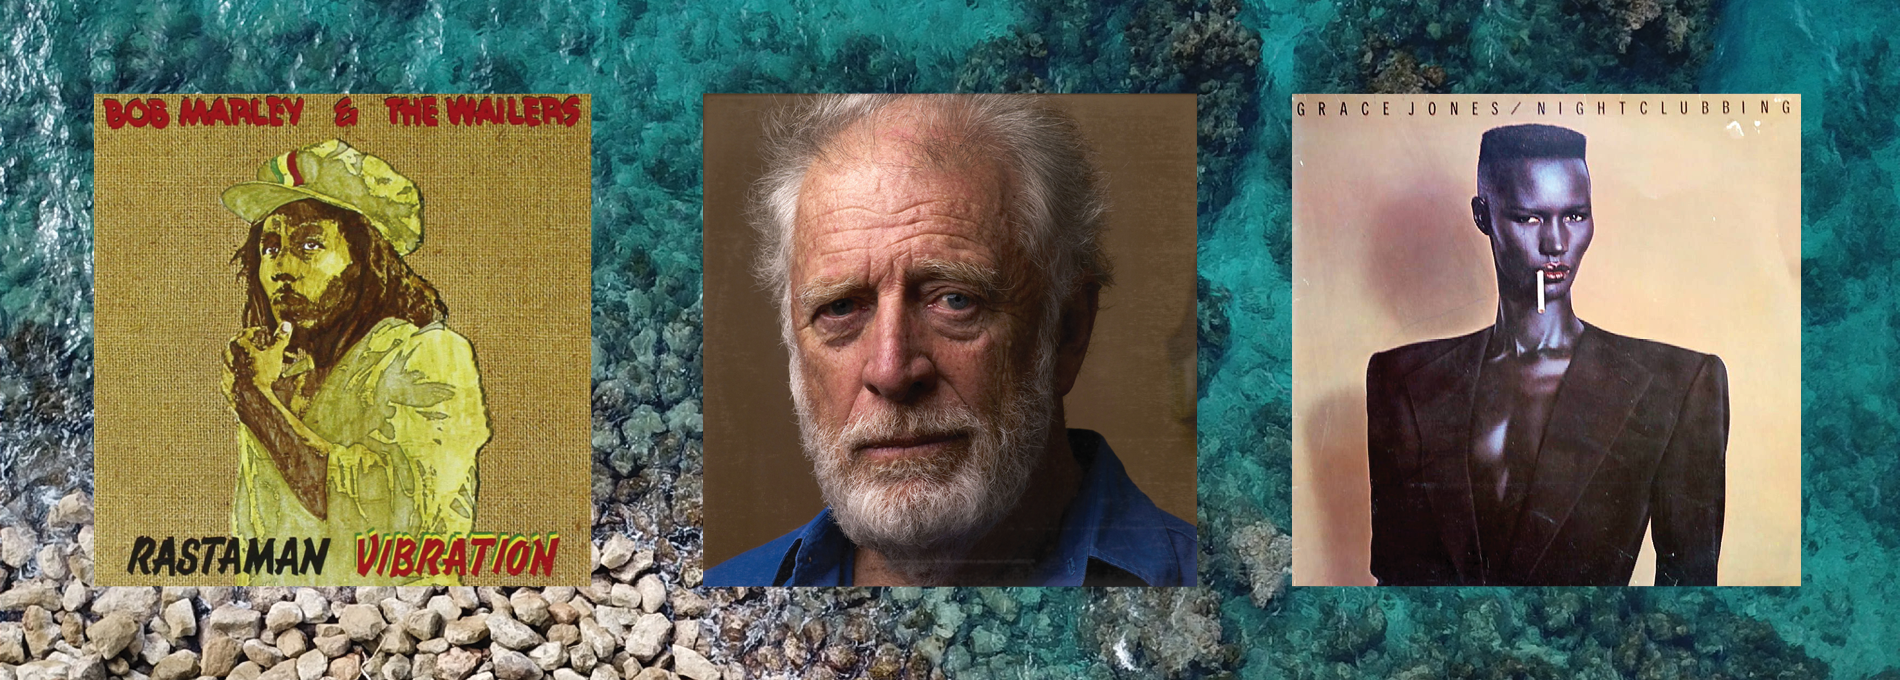 Que vida, hein, Chris Blackwell